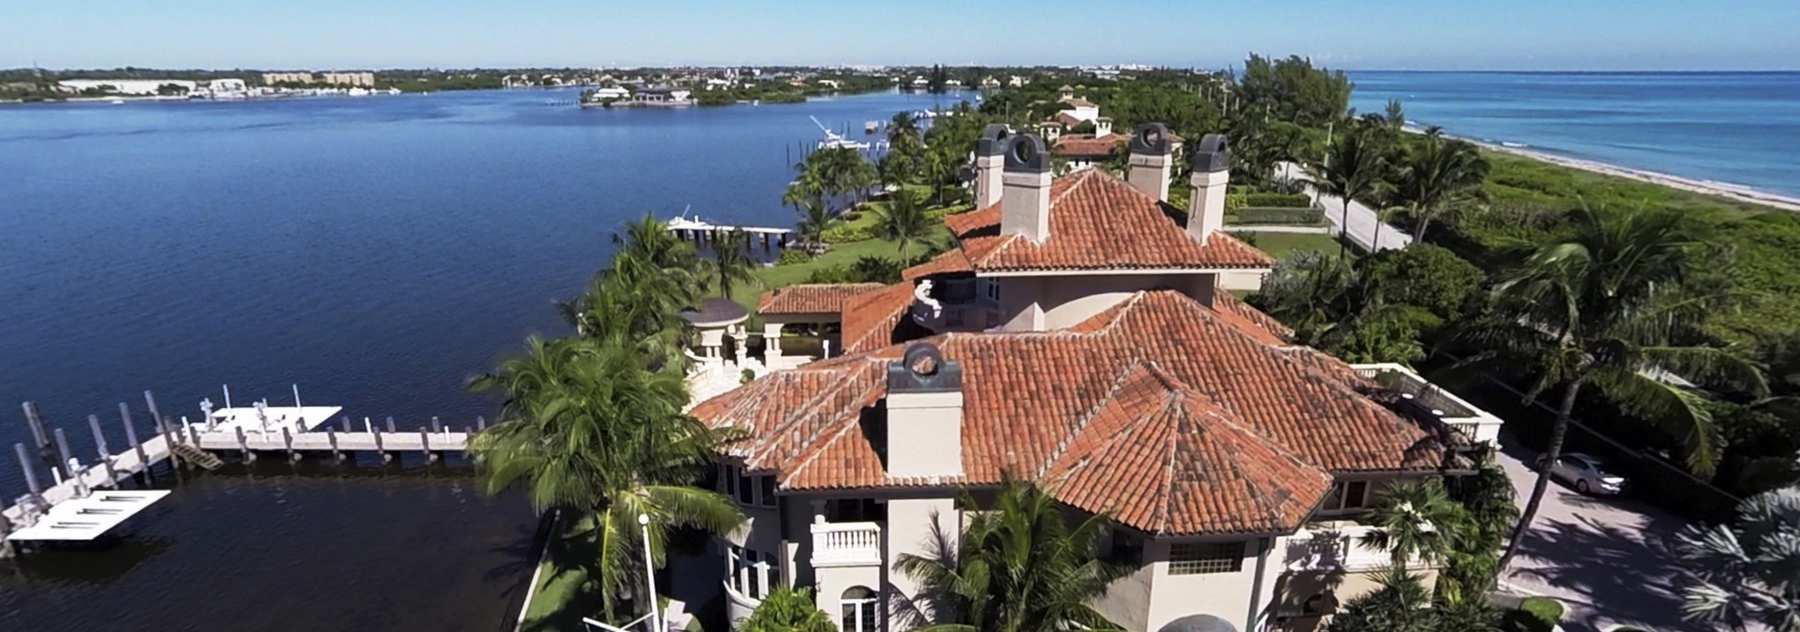 Manalapan, FL  Waterfront Properties & Condos for Sale